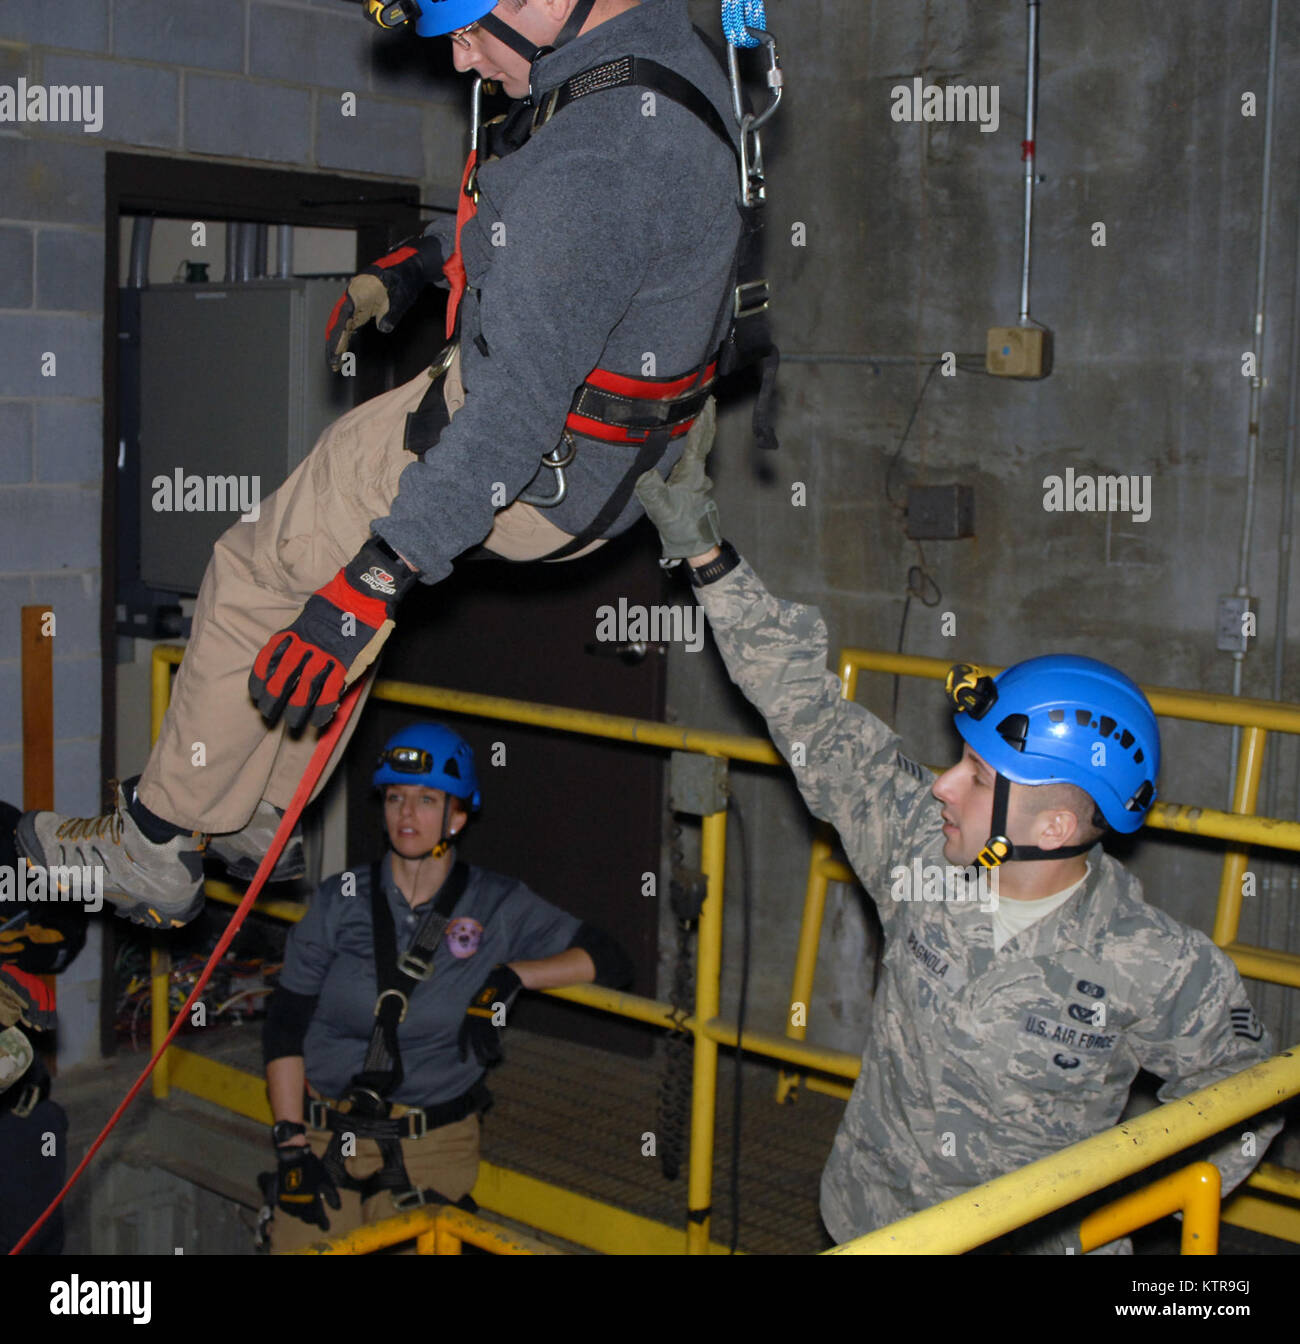 Staff Sgt. Joshua Spagnola of the New York National Guard's 2nd Civil Support Team (right) guides New York State - Stock Image